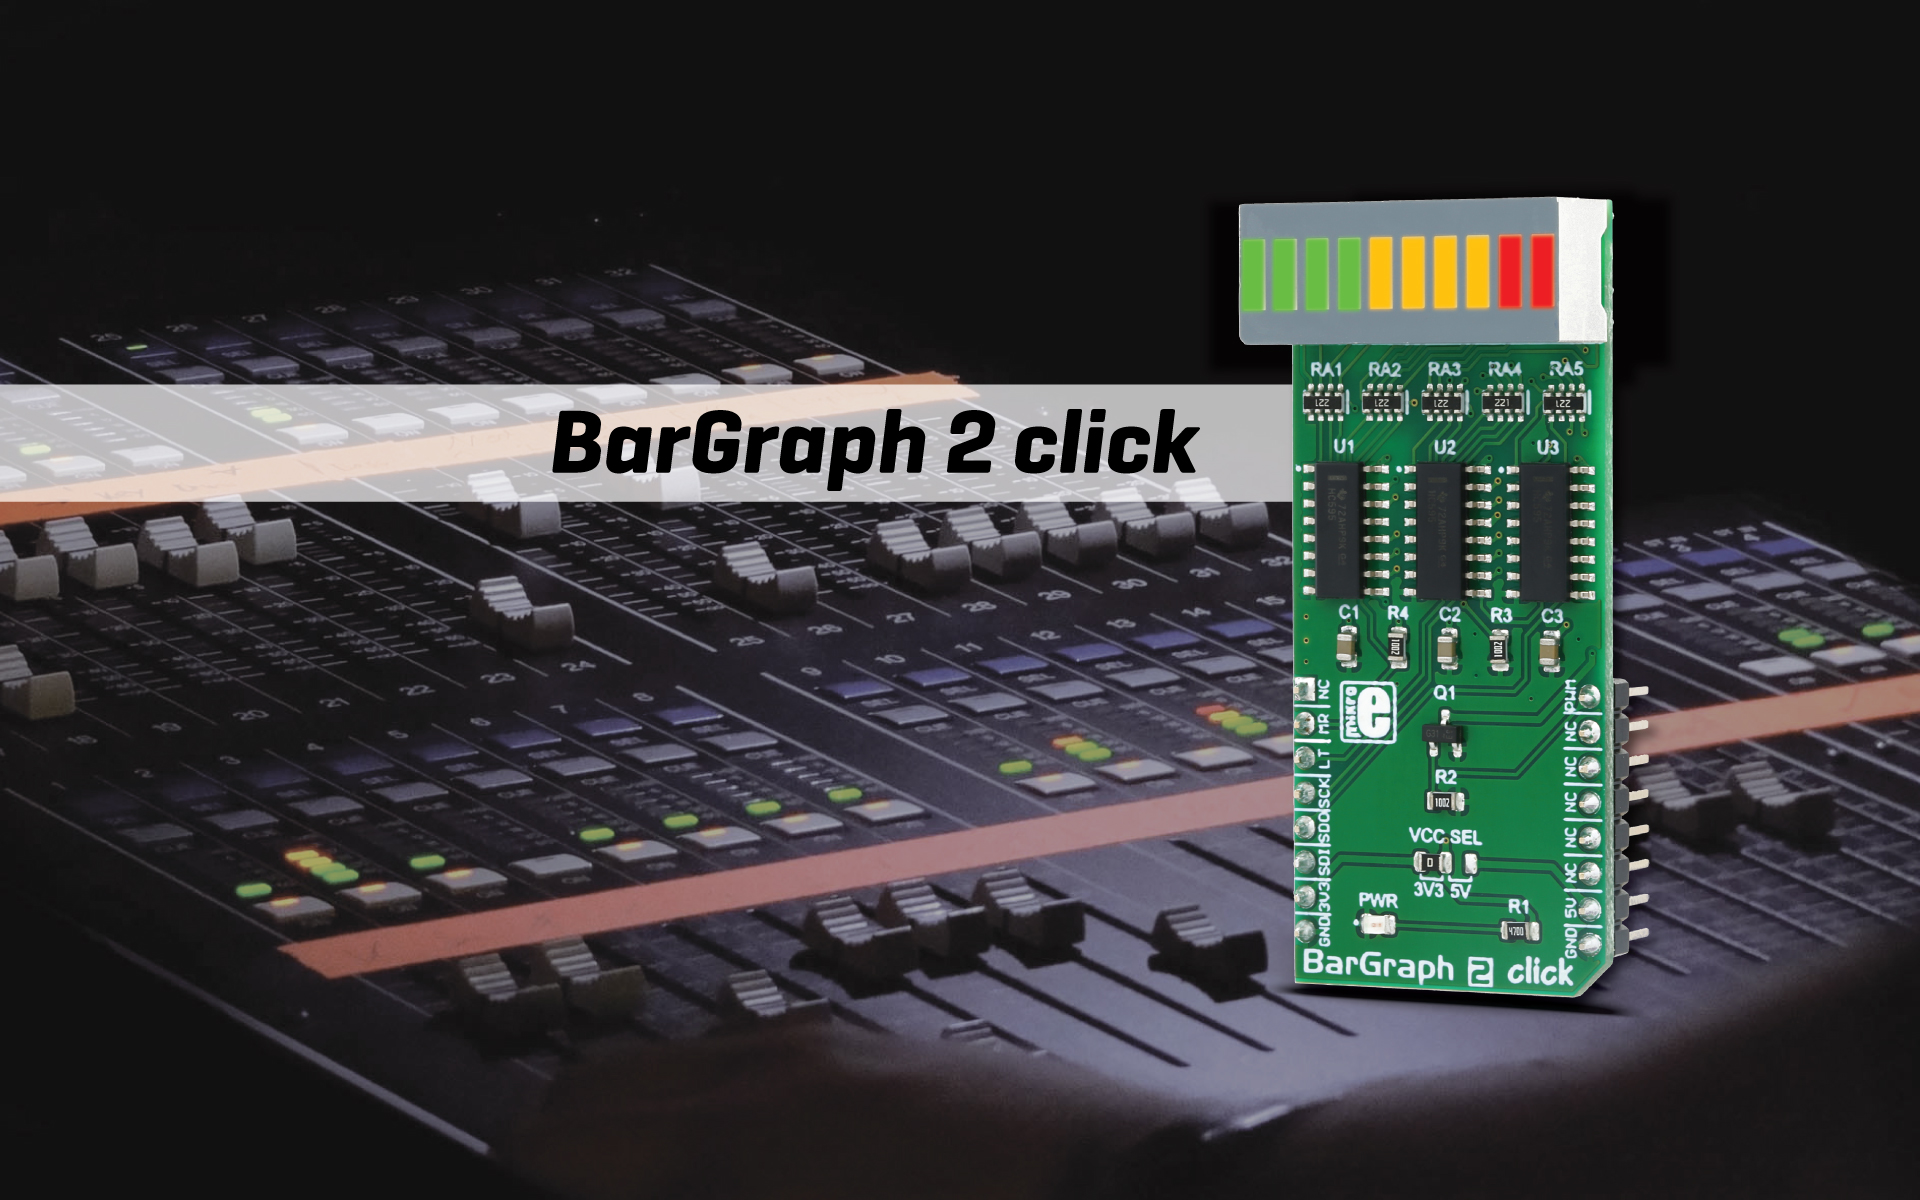 10-segment multicolor display - BarGraph 2 click